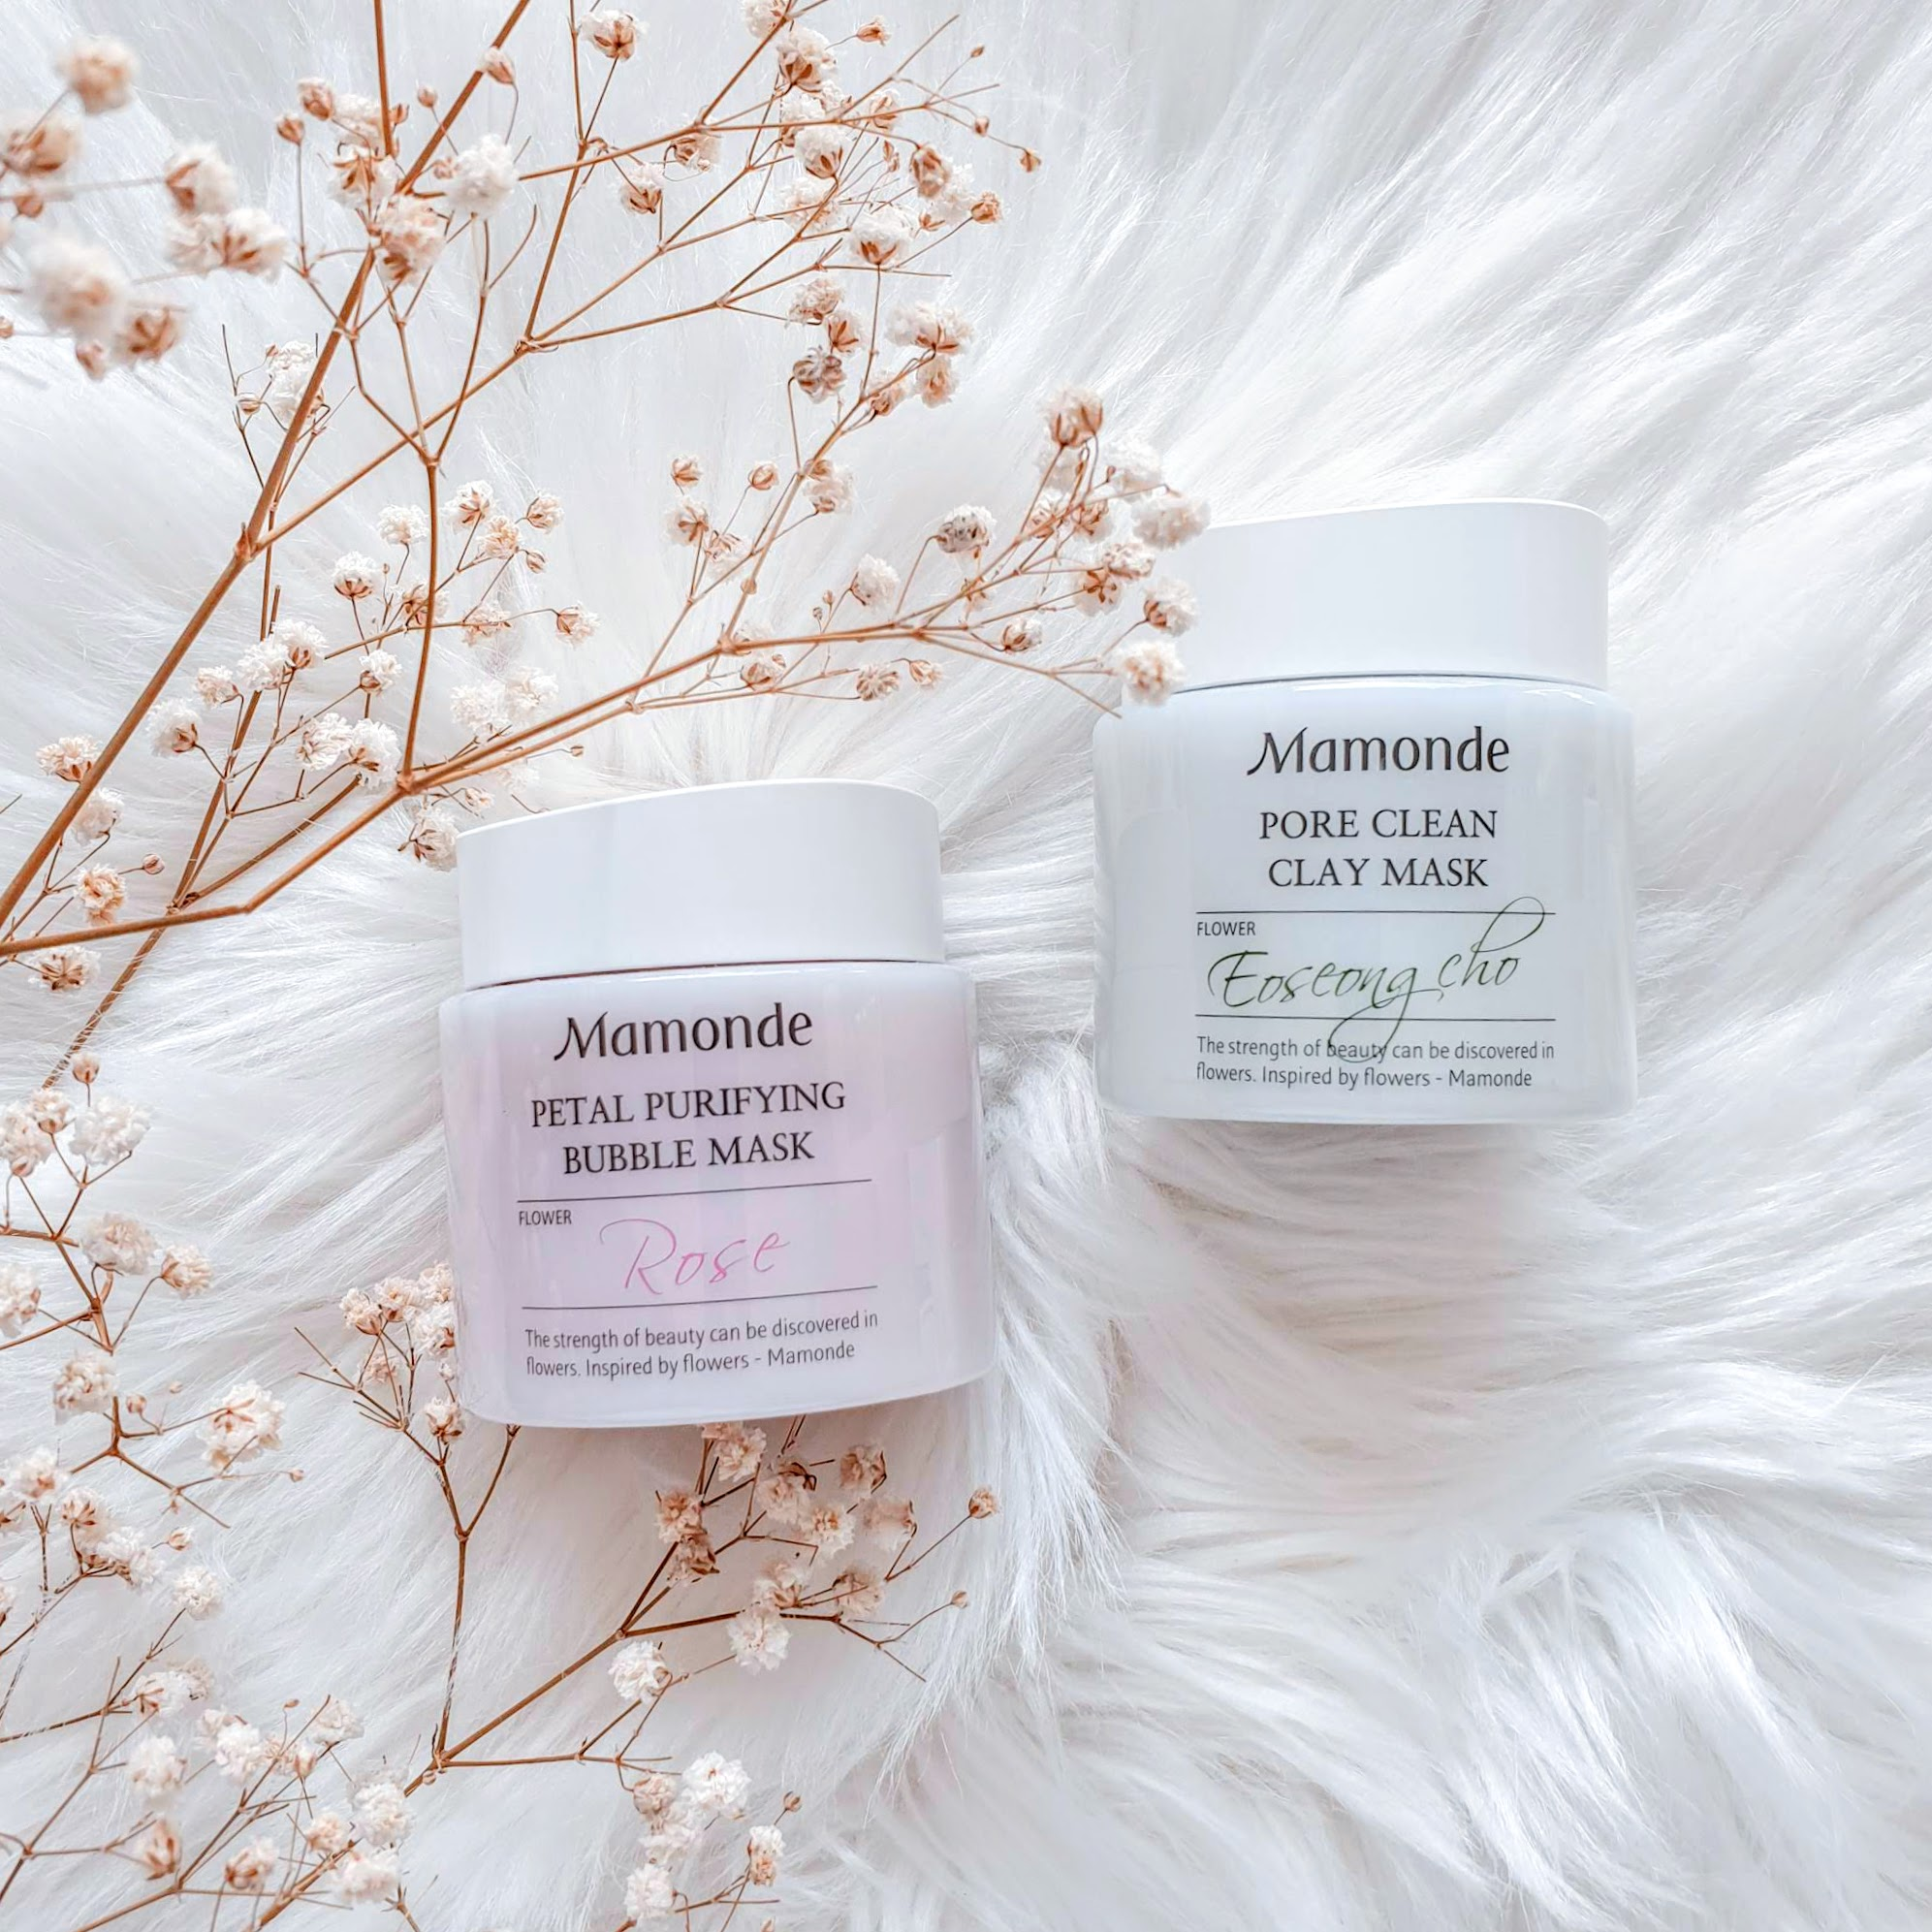 Mamonde Pore Clean Clay Mask & Petal Purifying Bubble Mask | Review